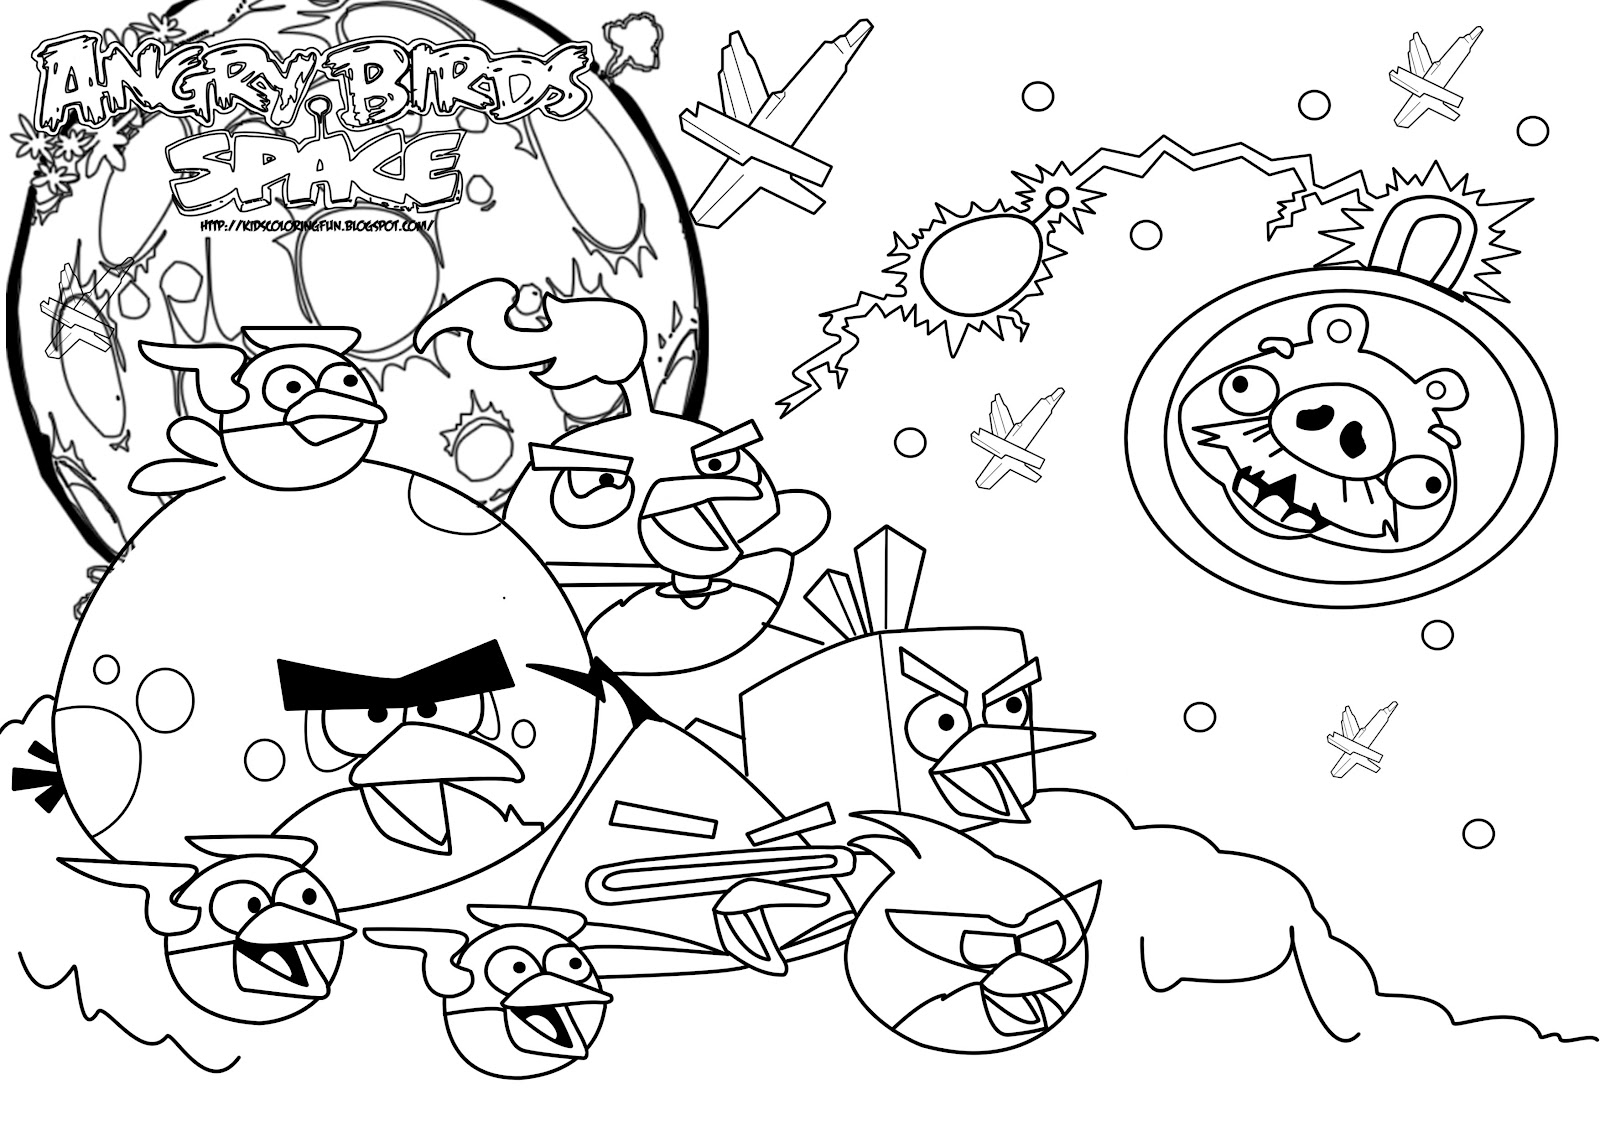 Characters Coloring Pages Angry Bird Space Cute Cartoon Wallpaper